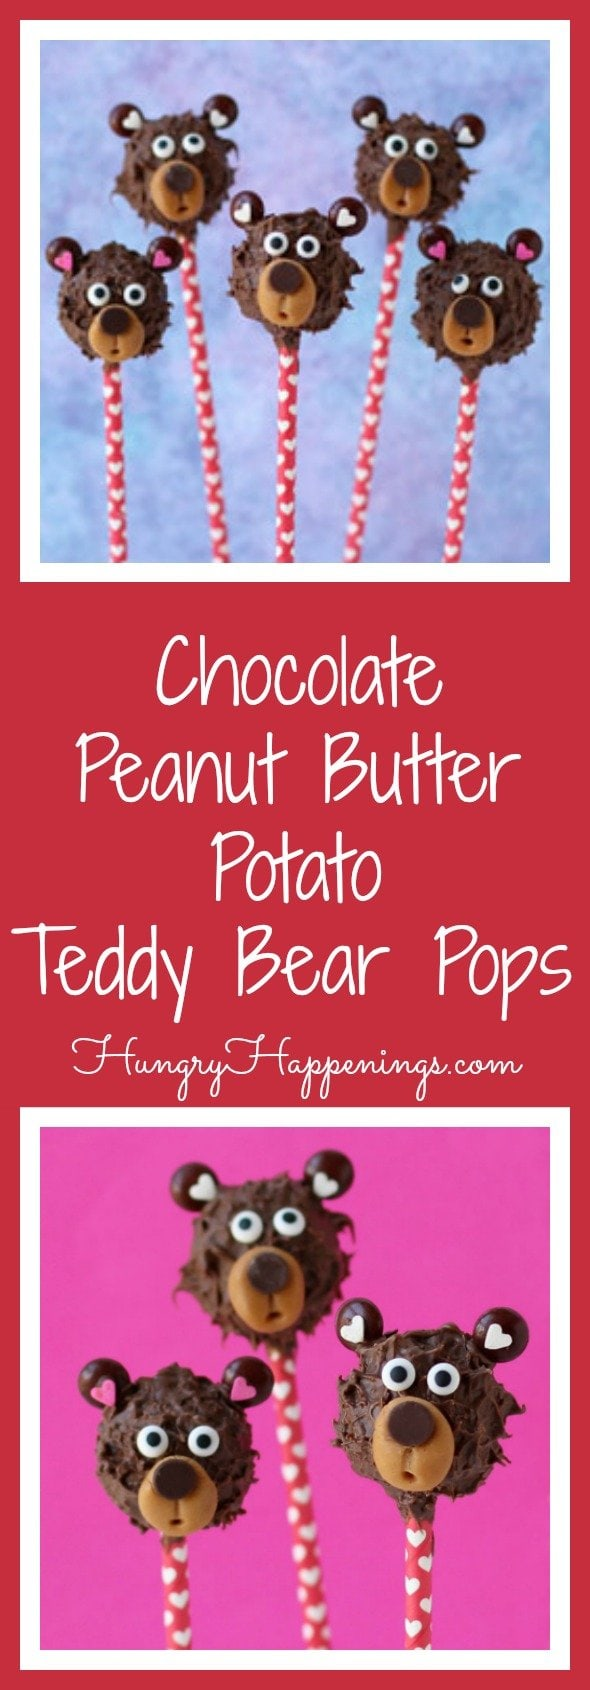 Yes, that title does read, Chocolate Peanut Butter Potato Candy Teddy Bear Pops.  Have you ever had an old fashioned peanut butter potato candy pinwheel before?